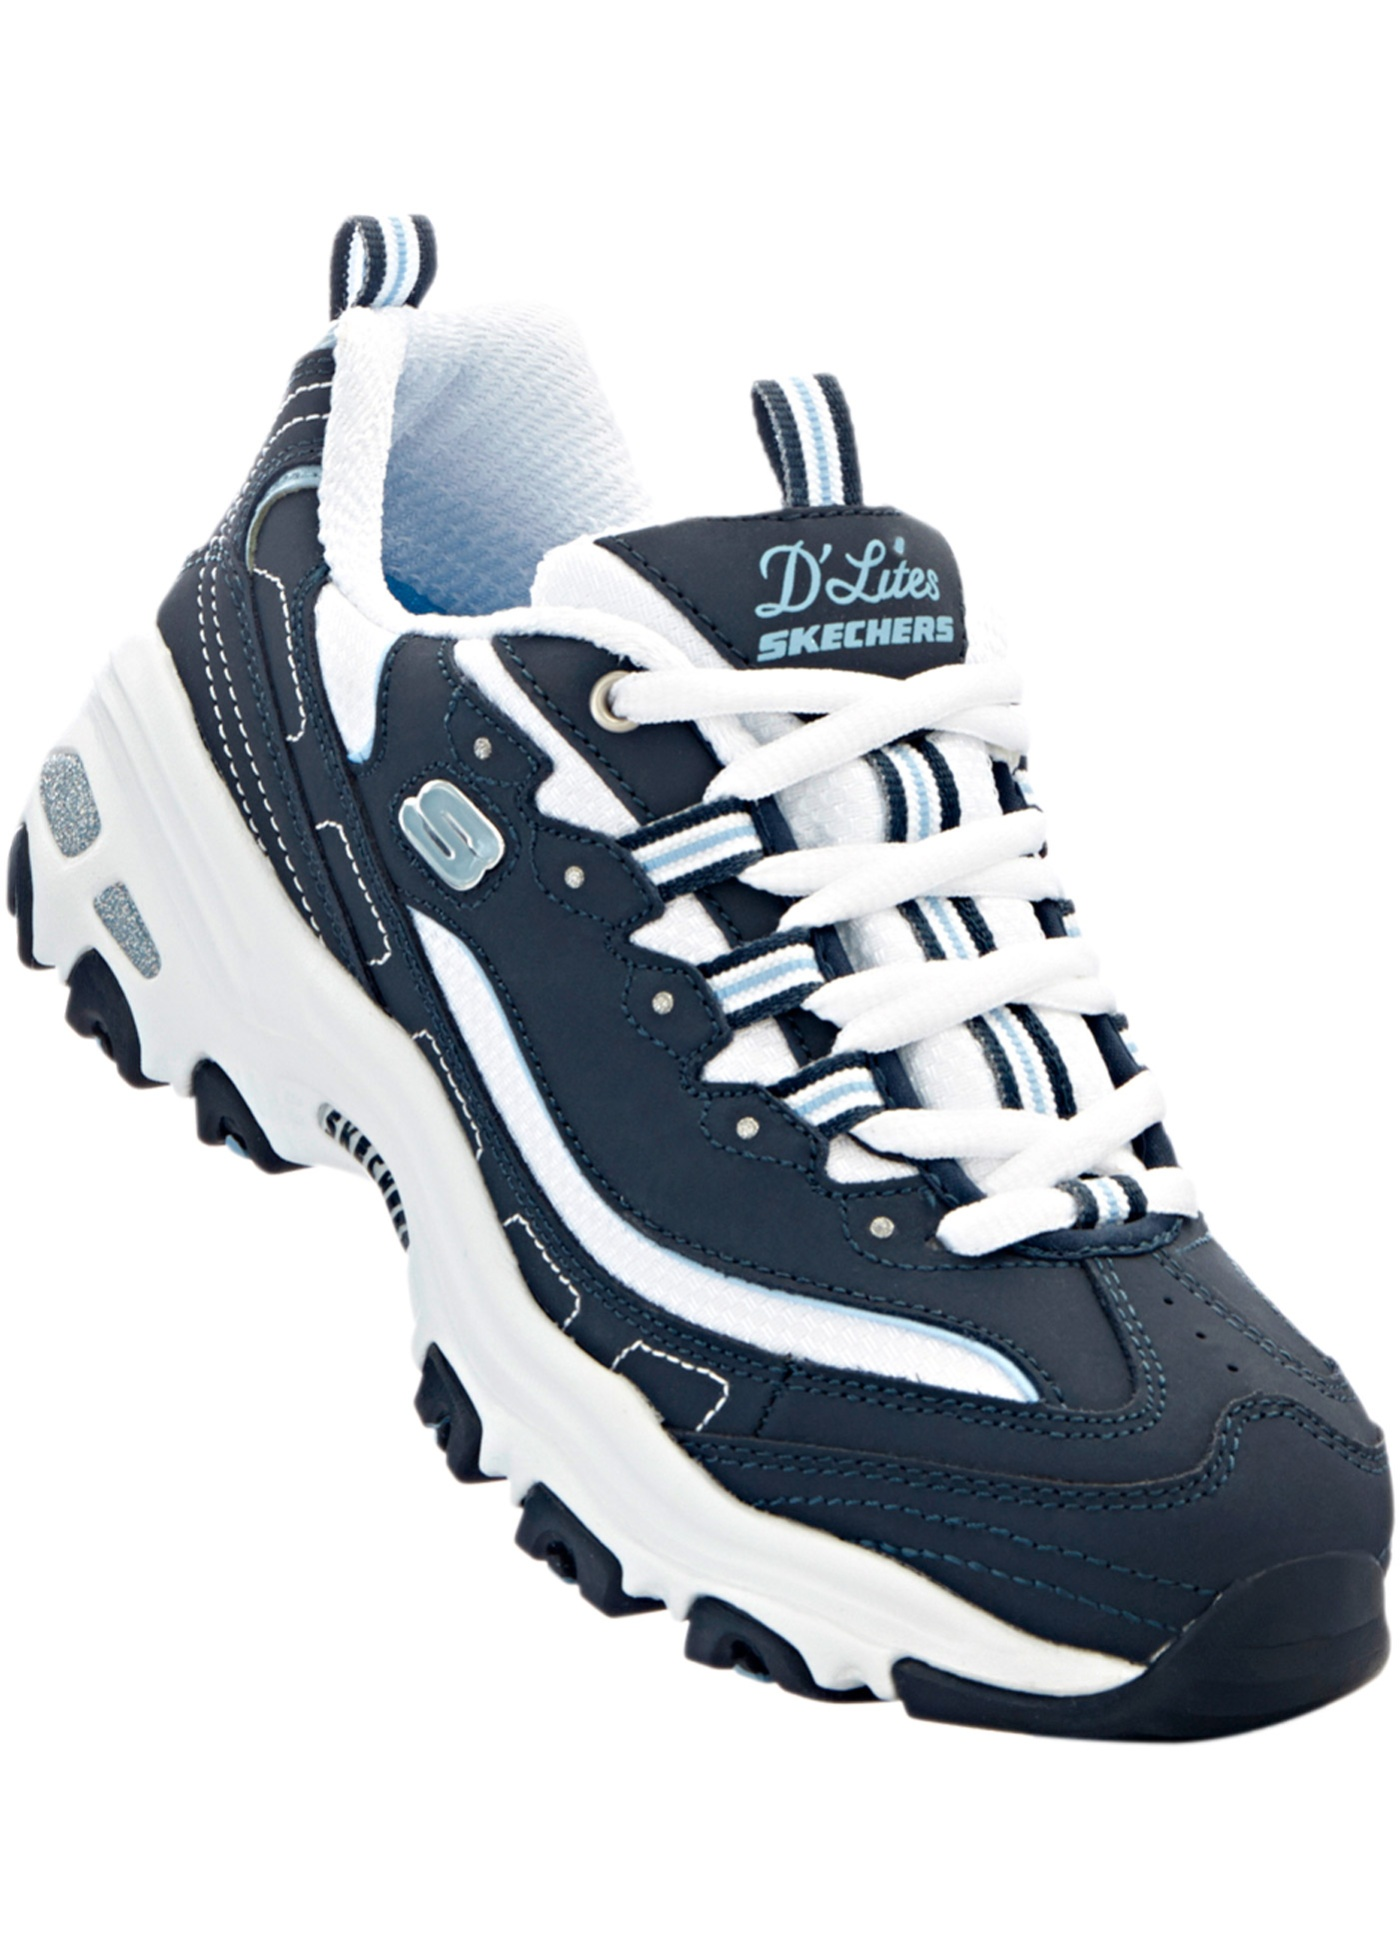 super popular 6bb08 29909 Sneaker von Skechers aus Leder | Products in 2019 | Schuhe ...